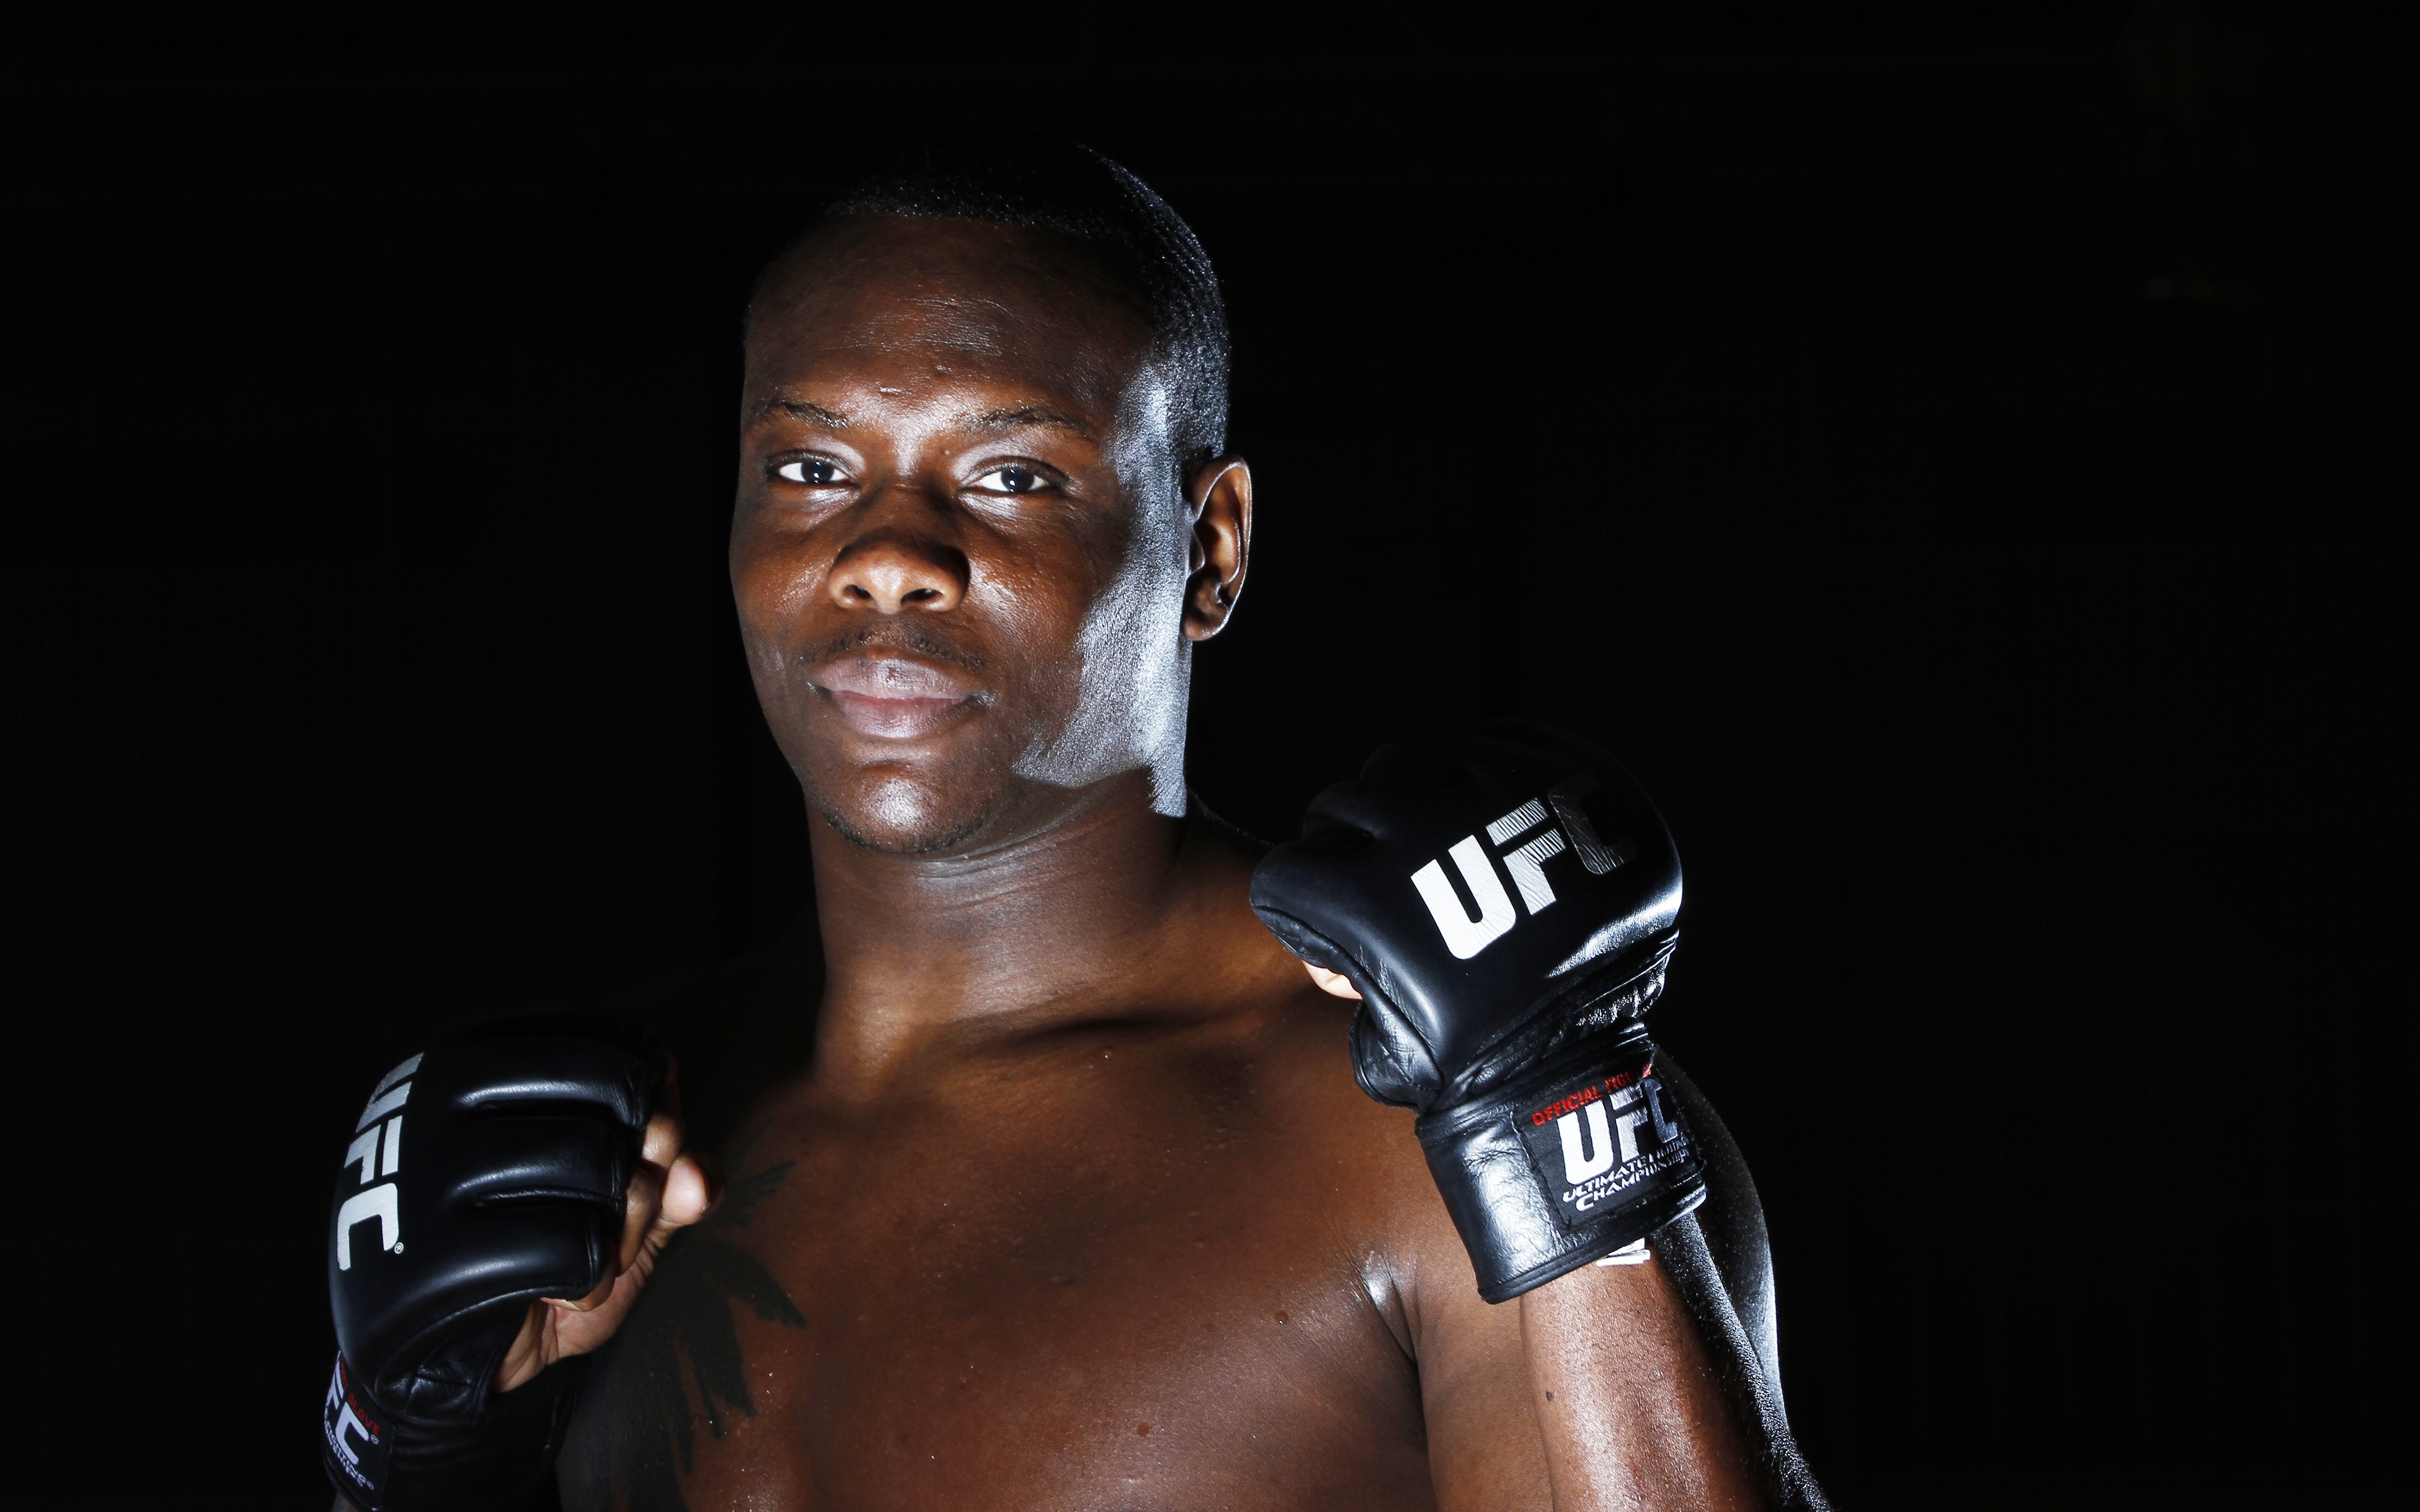 Download wallpaper 3840x2400 ovince saint preux ultimate fighting 3840x2400